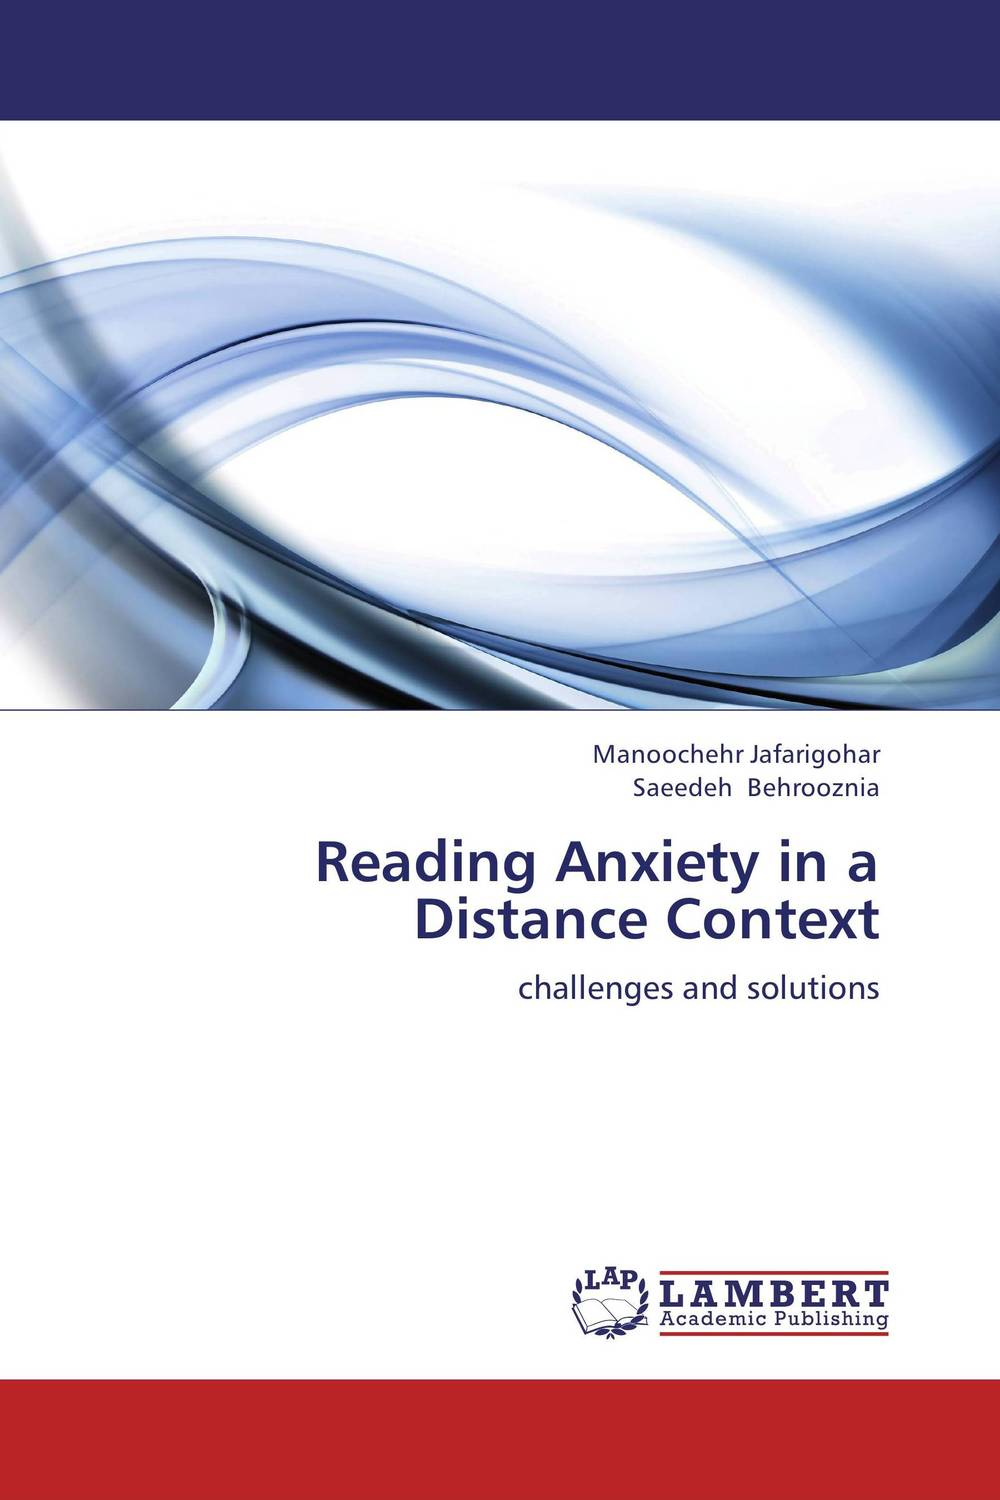 Reading Anxiety in a Distance Context foreign language speaking anxiety in asking questions in class